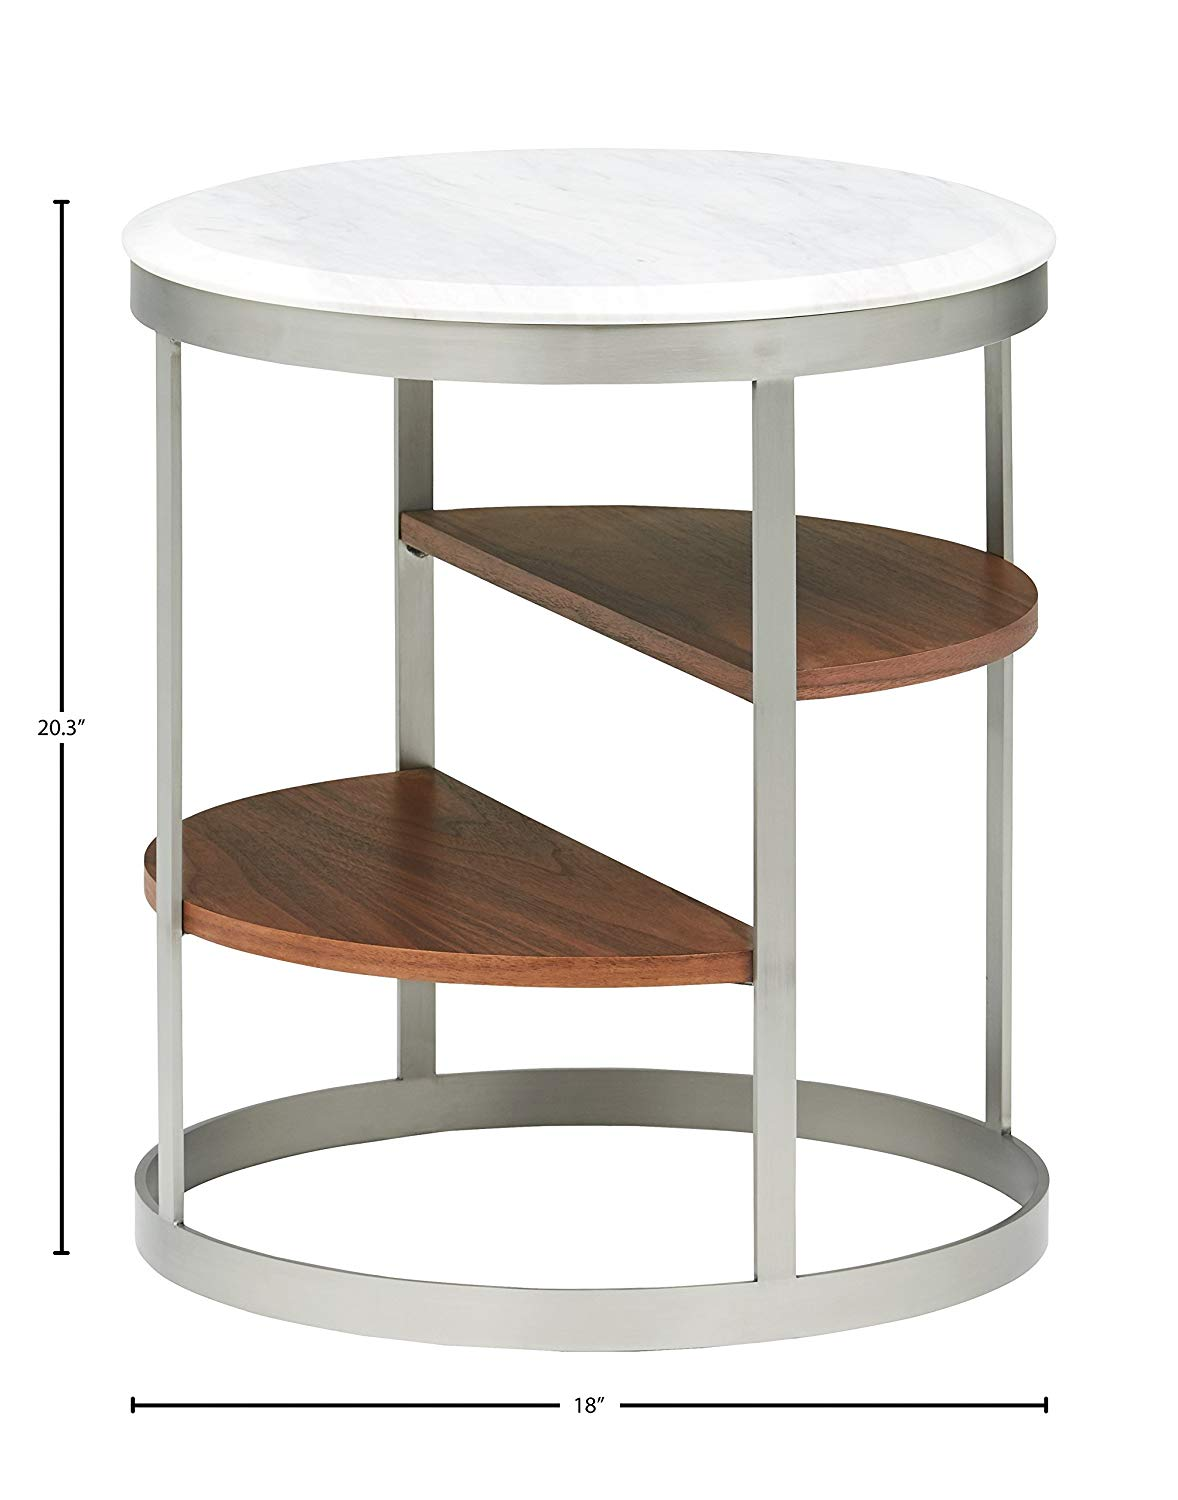 decorating round ideas cover threshold white wooden side accent table for covers wood unfinished tablecloth faux pedestal cloths full size patio serving target gold bar cart small